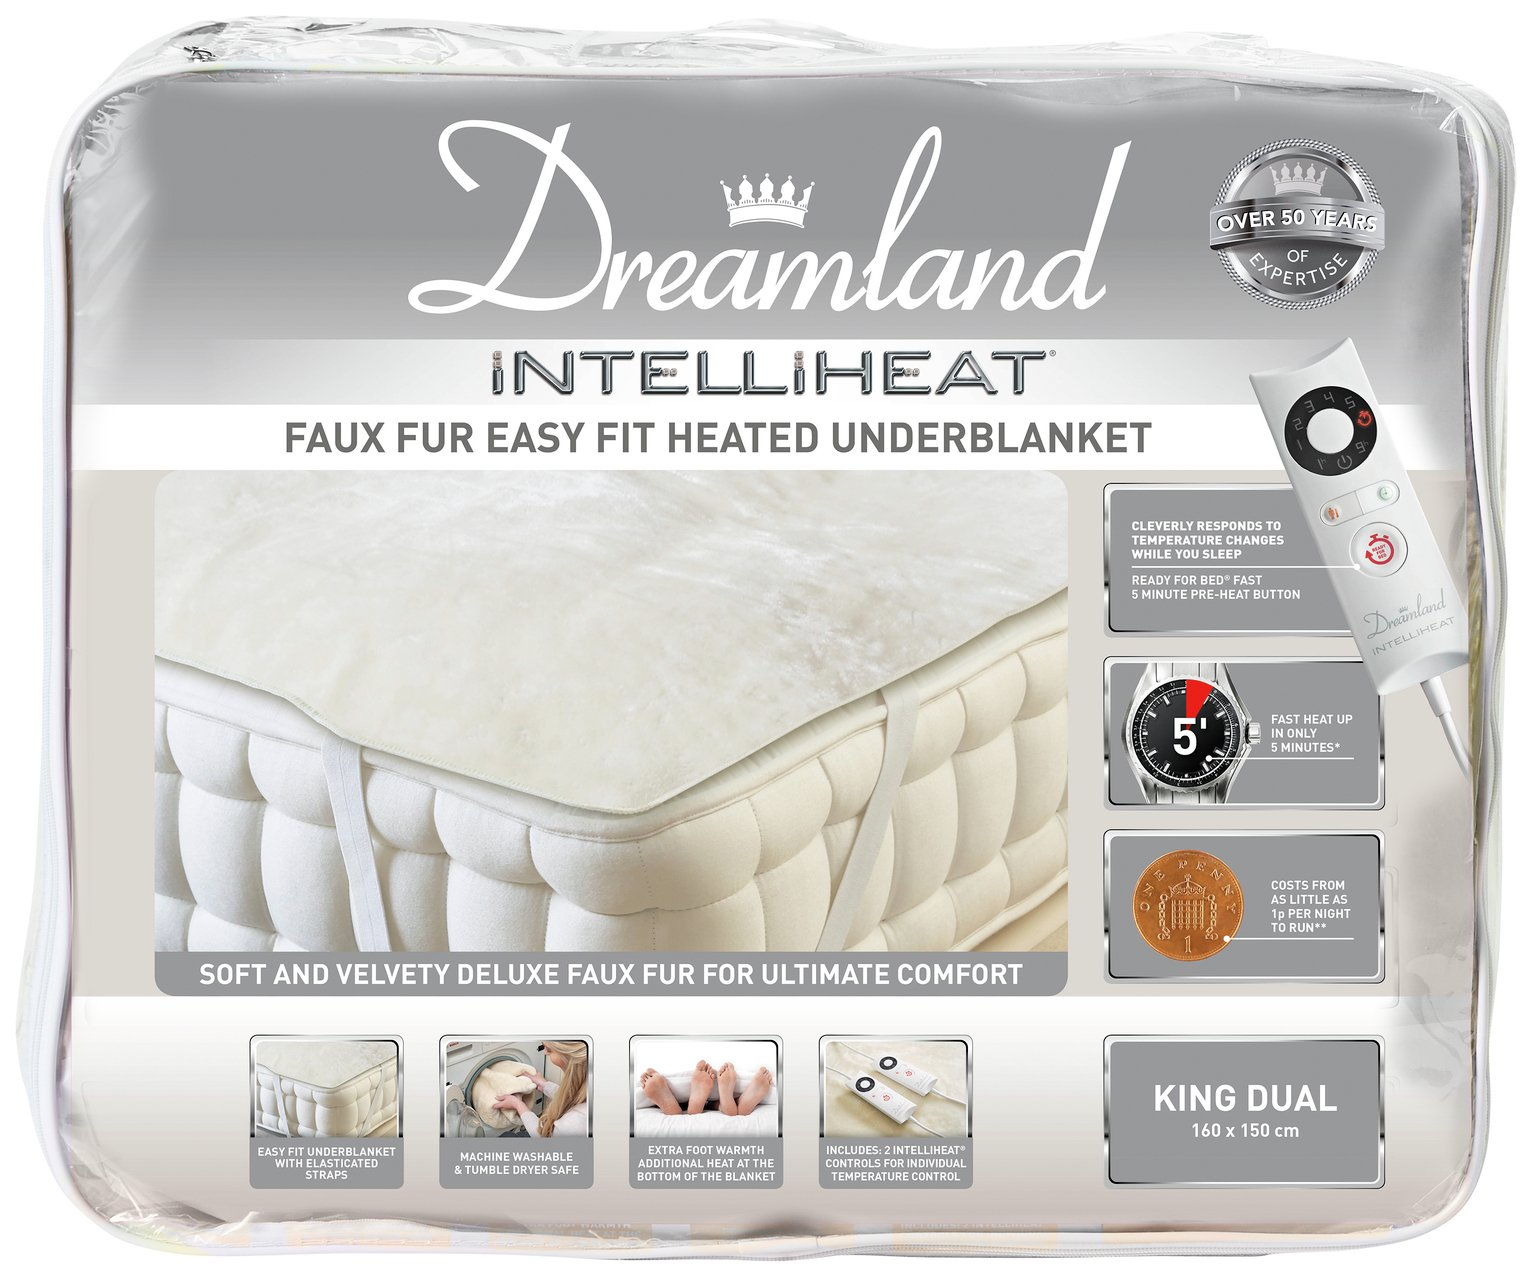 Dreamland Intelliheat Dual Control Electric Blanket - King